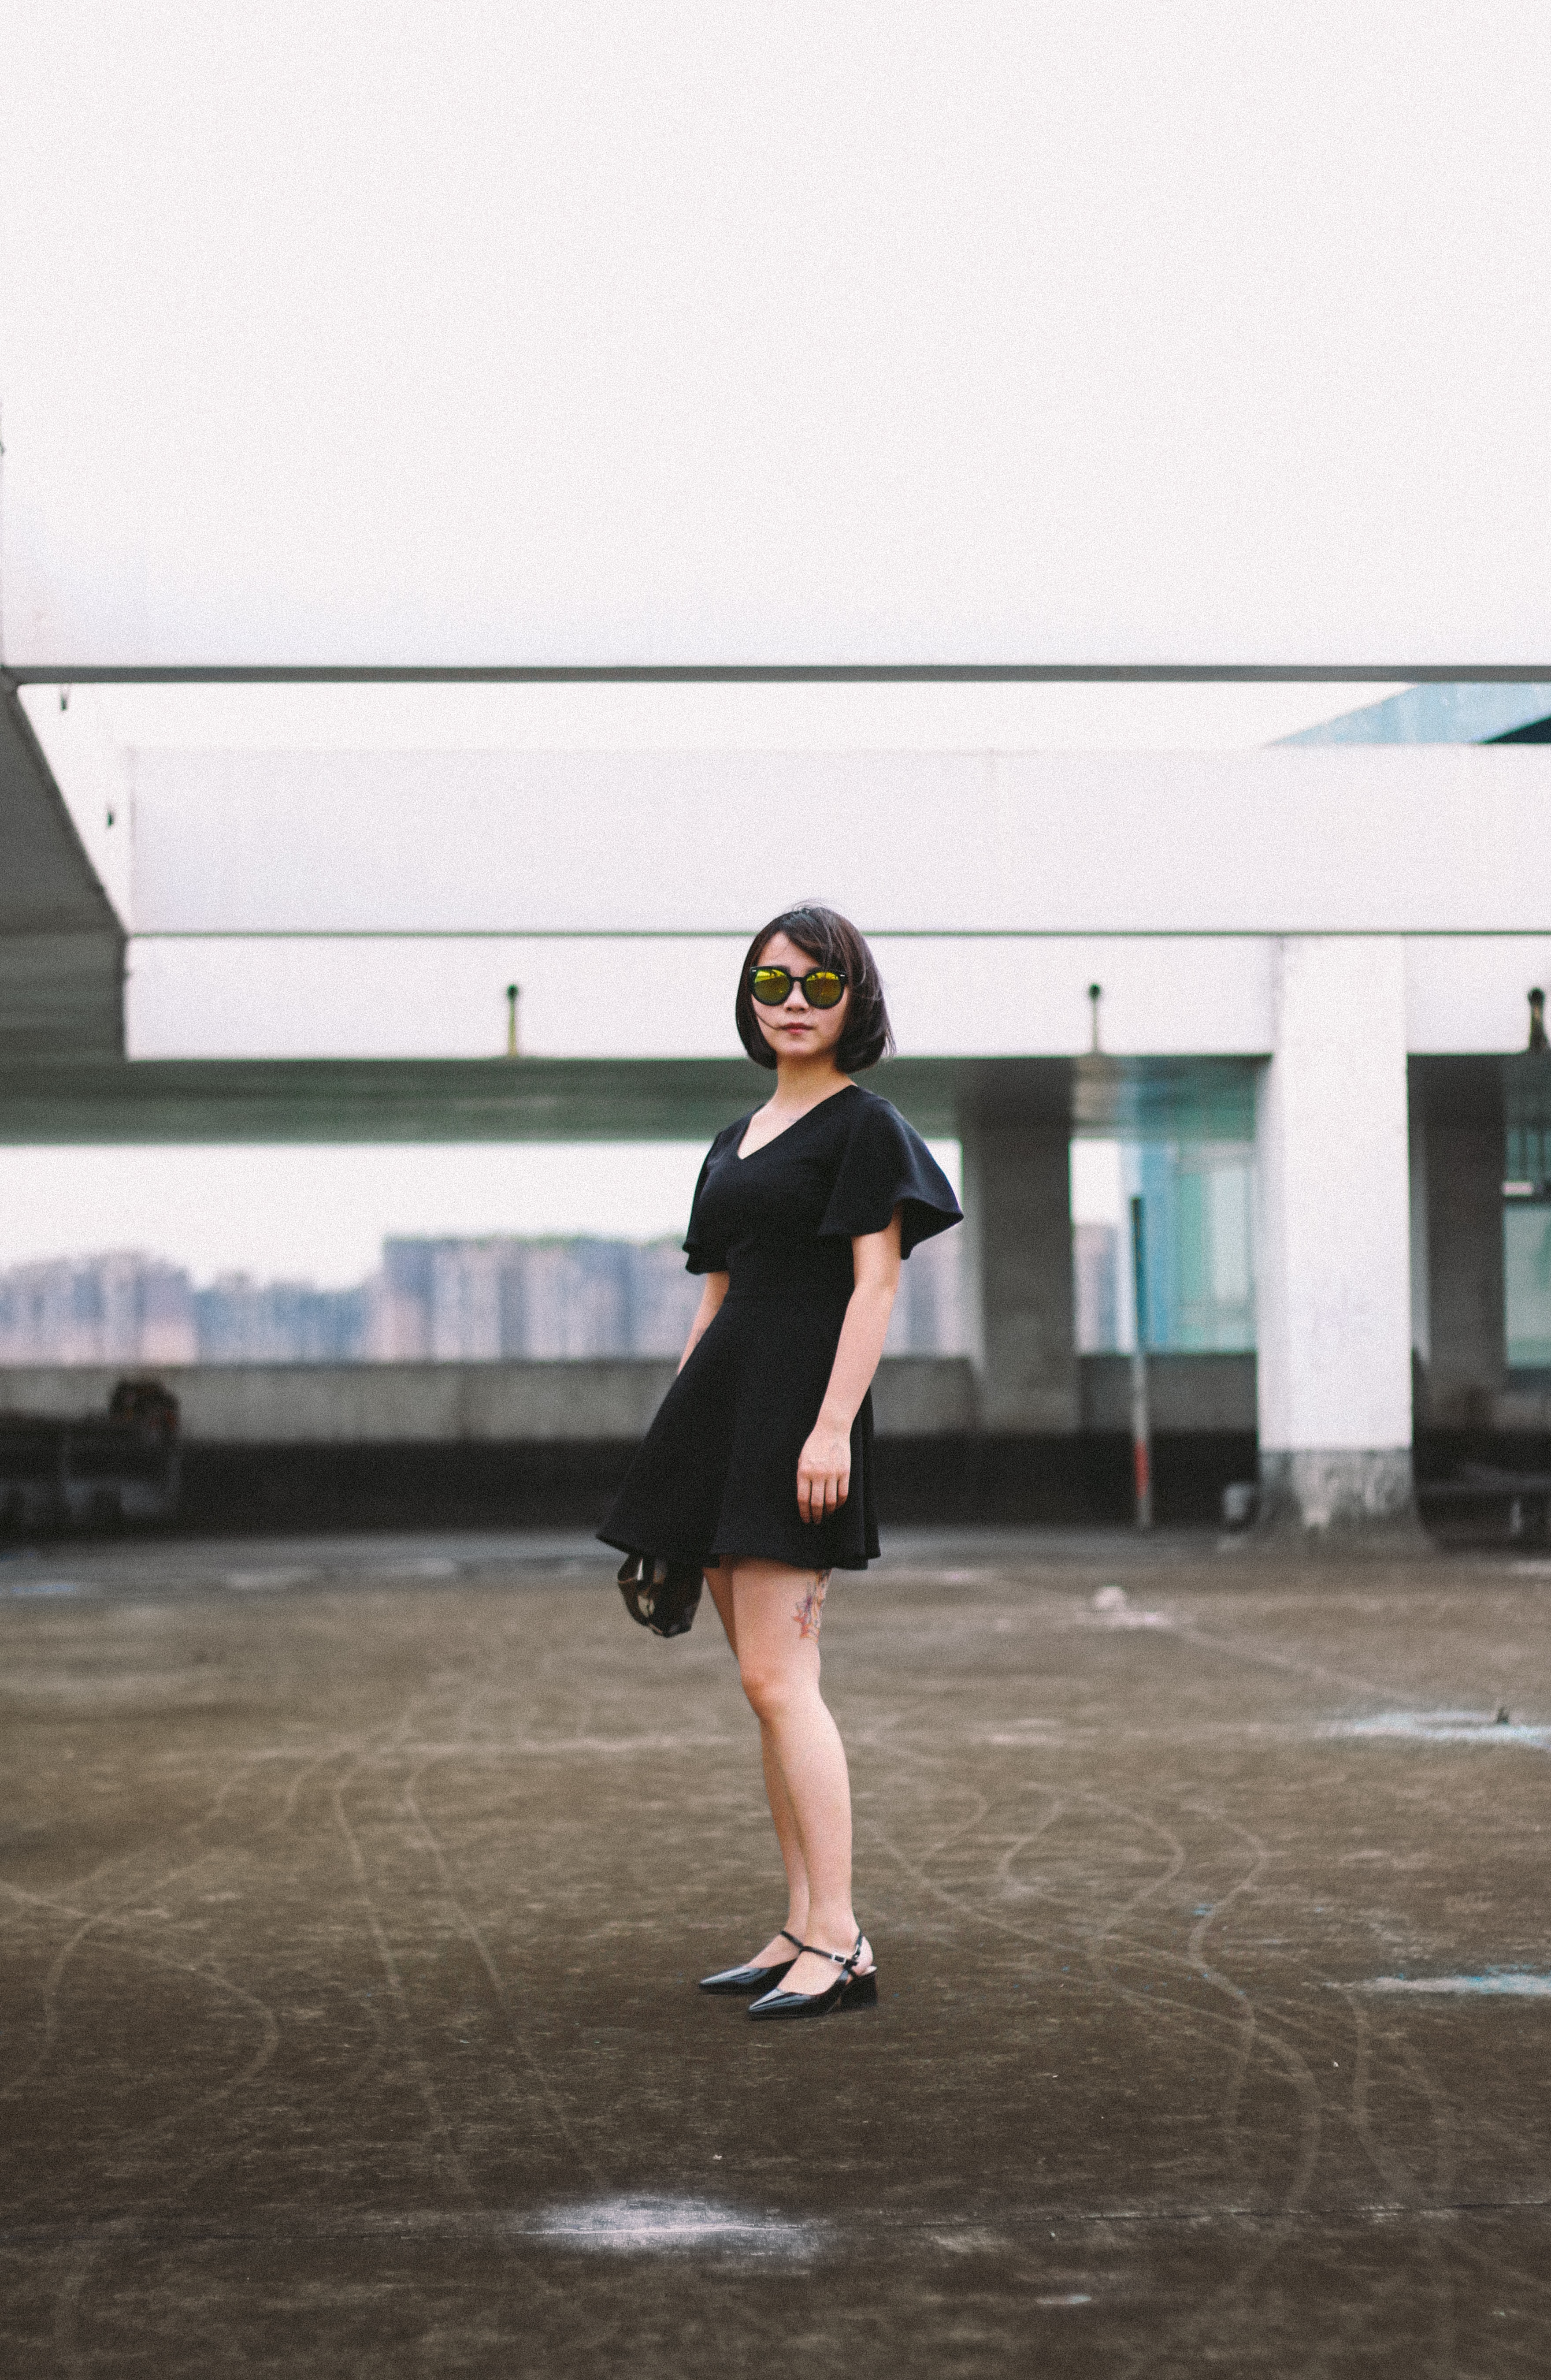 woman in black minidress and black sunglasses standing on street